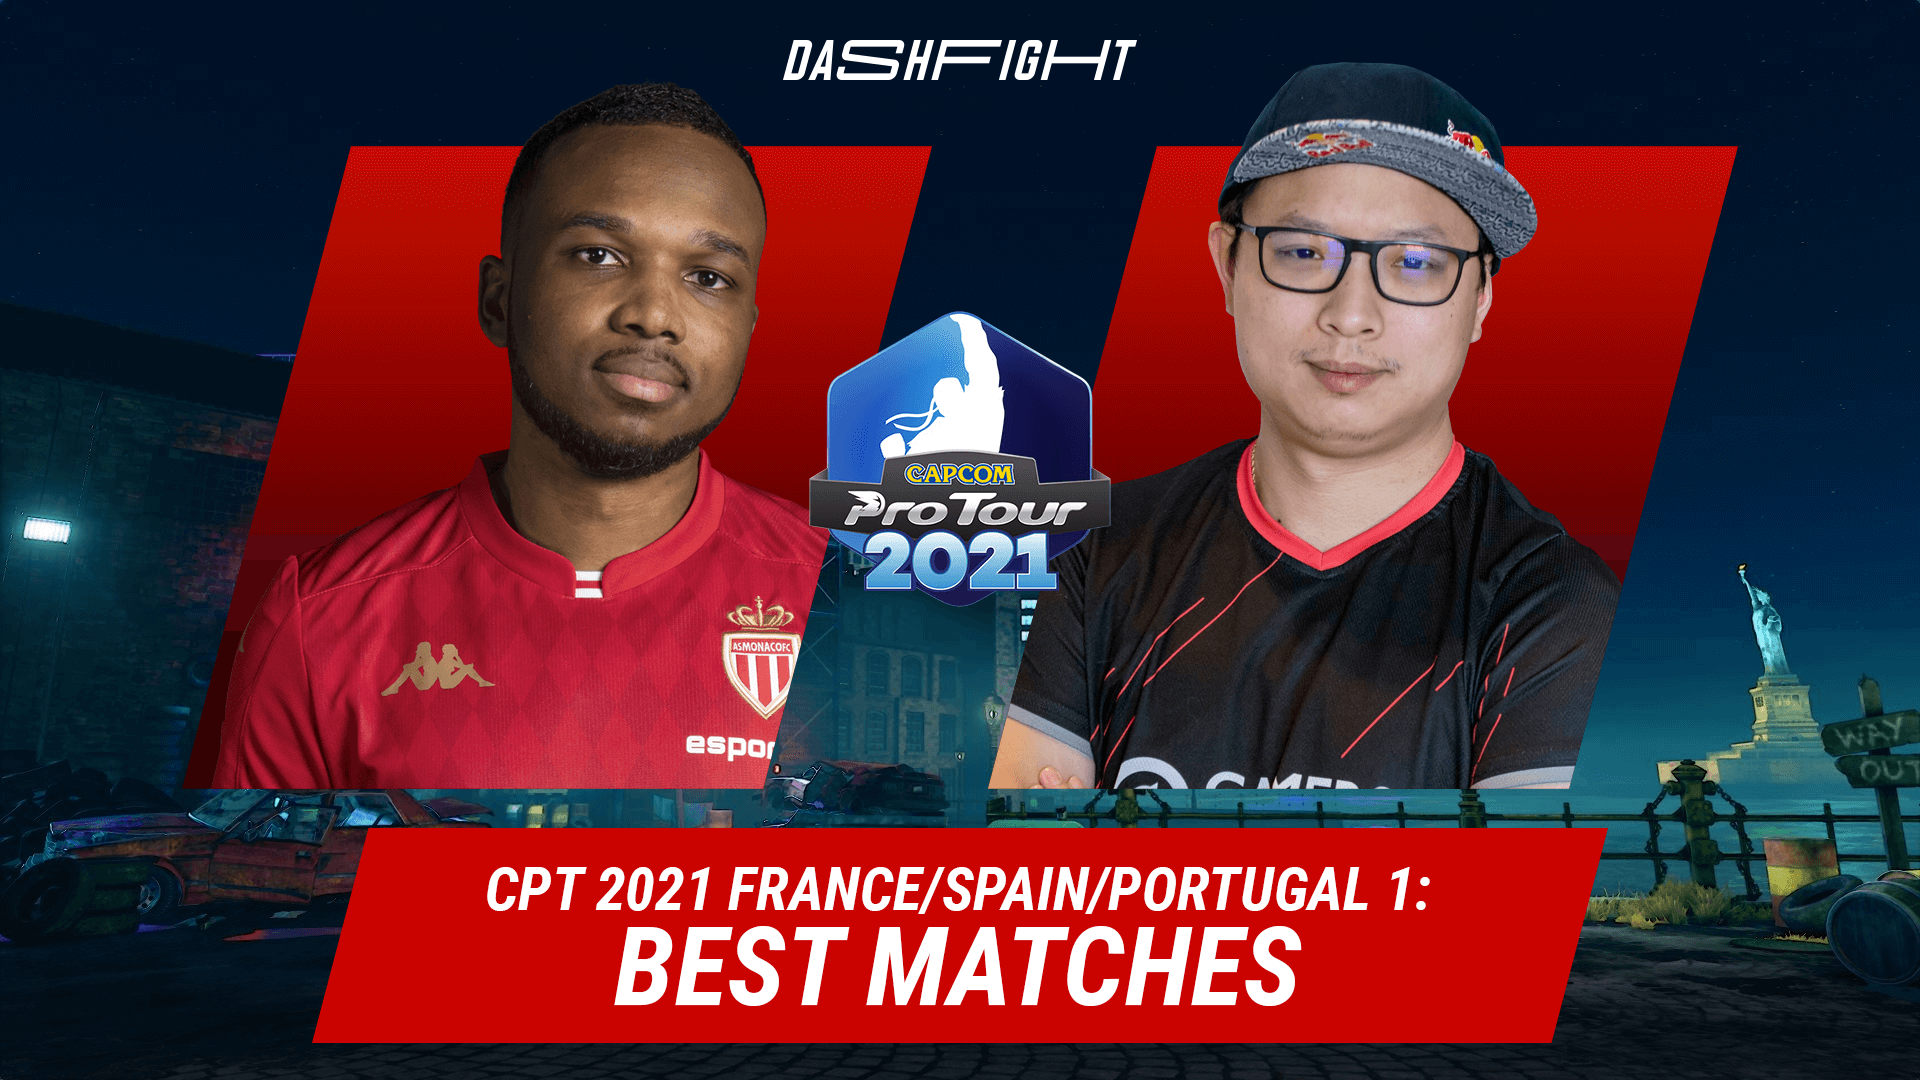 CPT 2021: Best Matches from France/Spain/Portugal 1